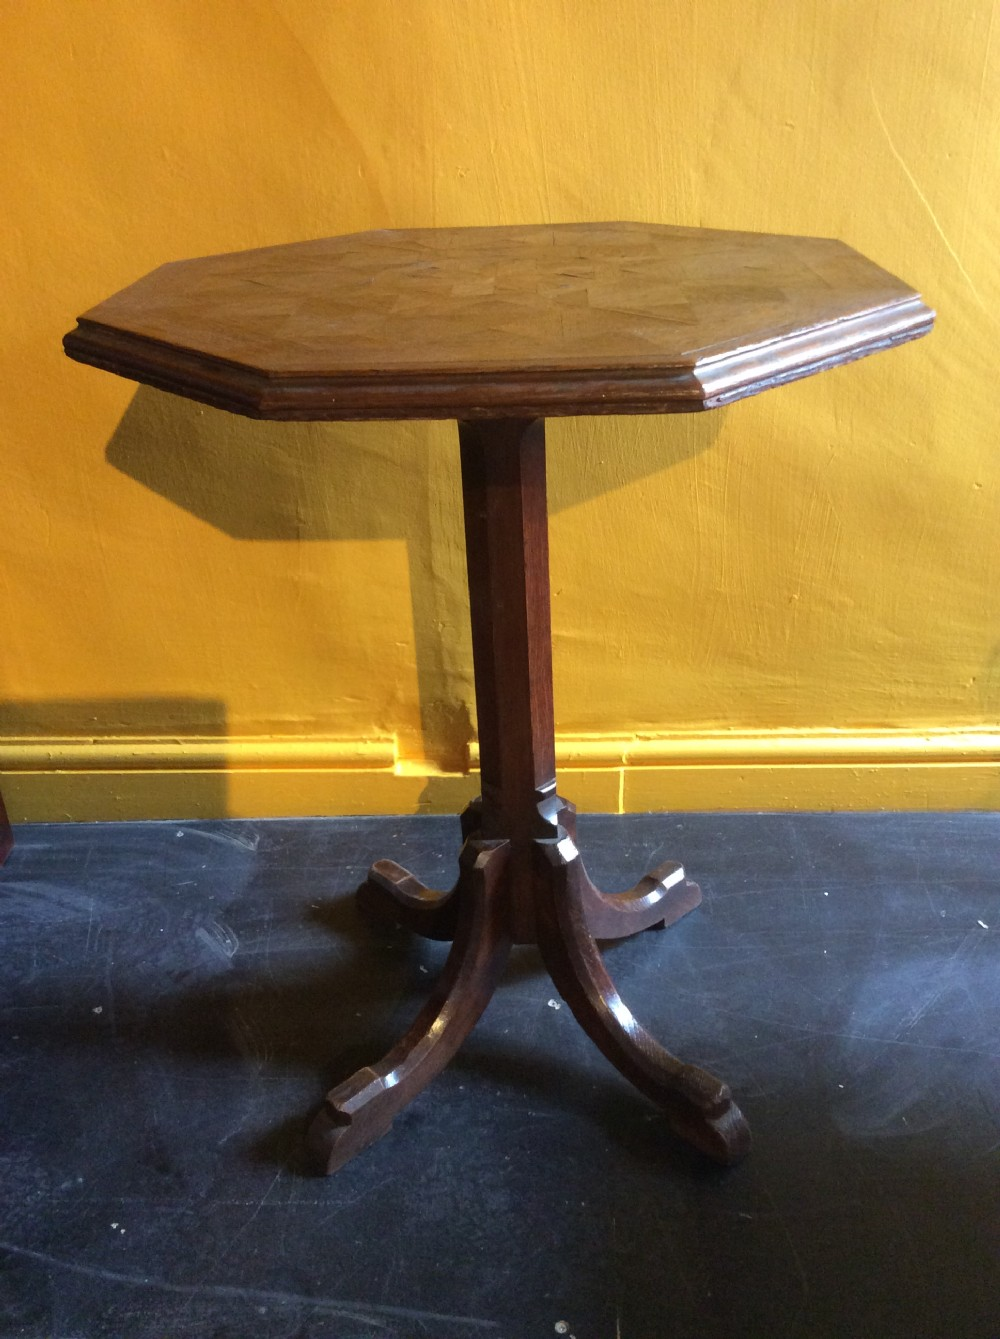 19th c oak parquetry top reformed gothic table